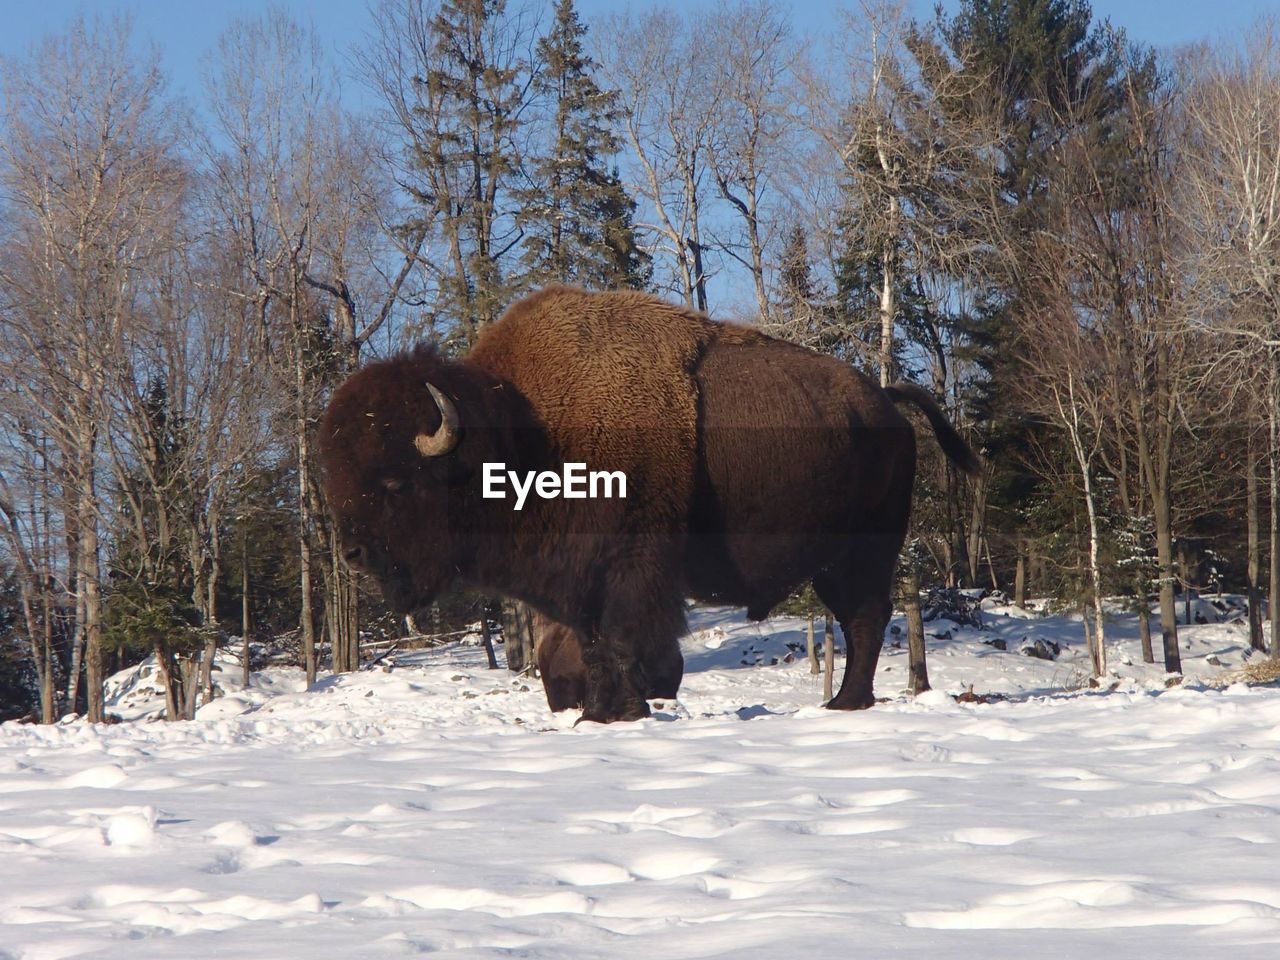 winter, snow, cold temperature, animal themes, field, nature, mammal, one animal, no people, outdoors, bull, tree, beauty in nature, day, standing, domestic animals, american bison, landscape, bare tree, sky